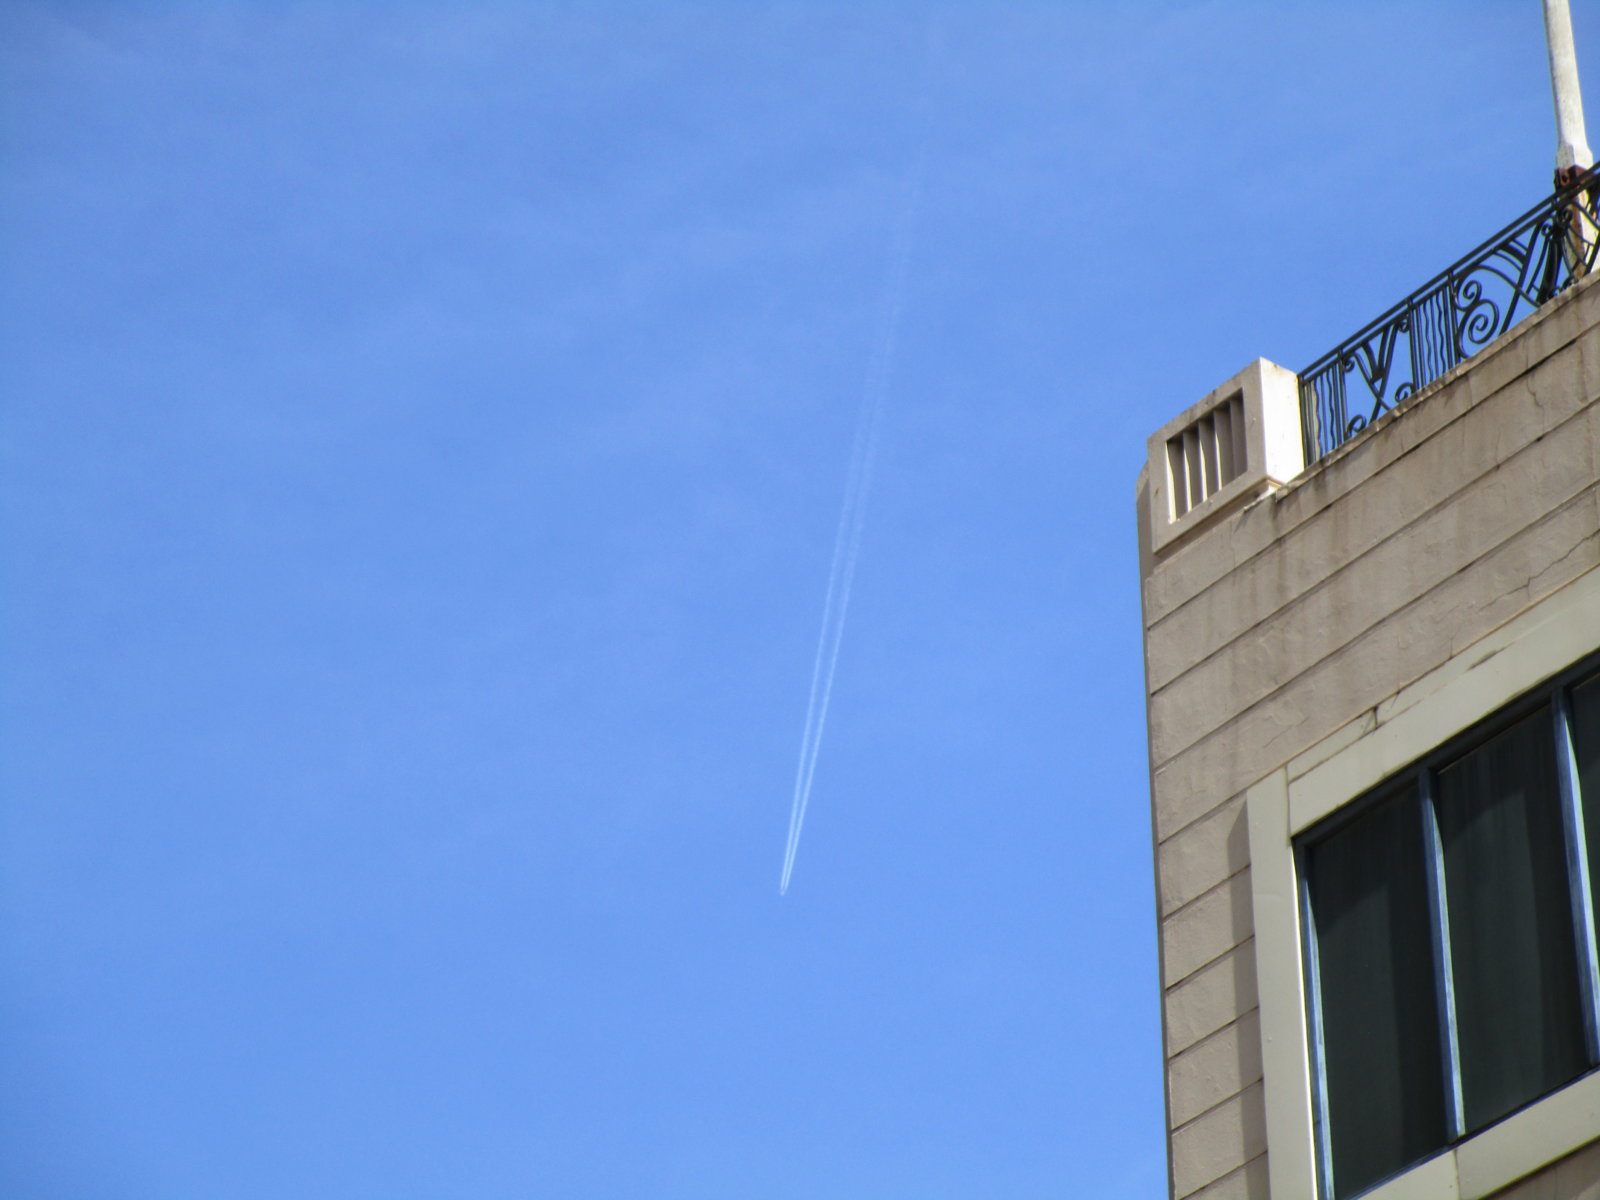 Contrail_Rundle_Mall.jpg